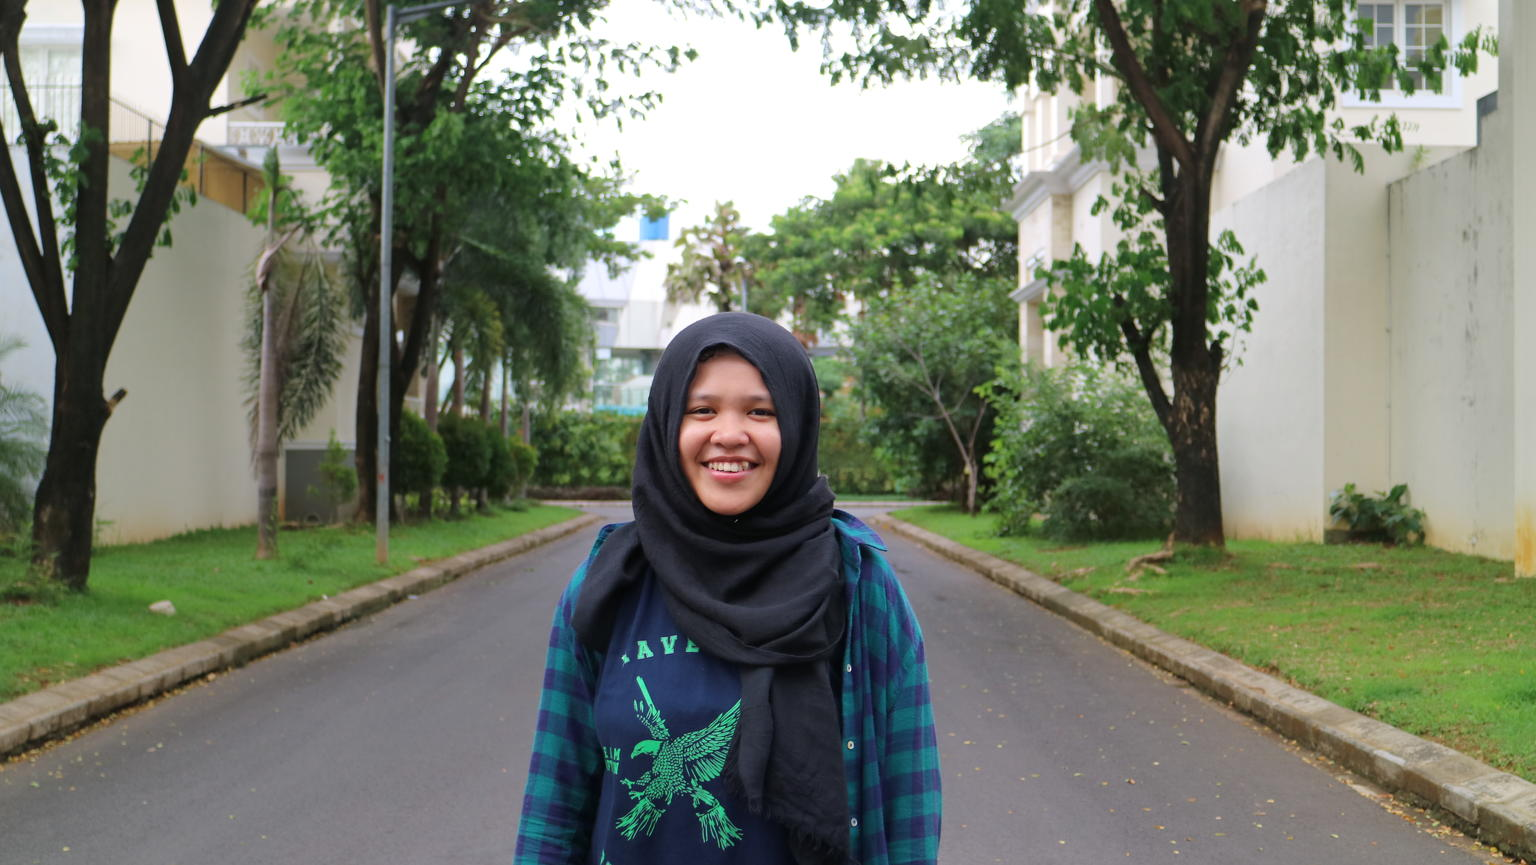 Portrait of Rizka Raisa Fatimah Ramli, a 17-year-old student from Makassar, Indonesia, and winner of the UNICEF and Comics Uniting Nations' worldwide comic contest